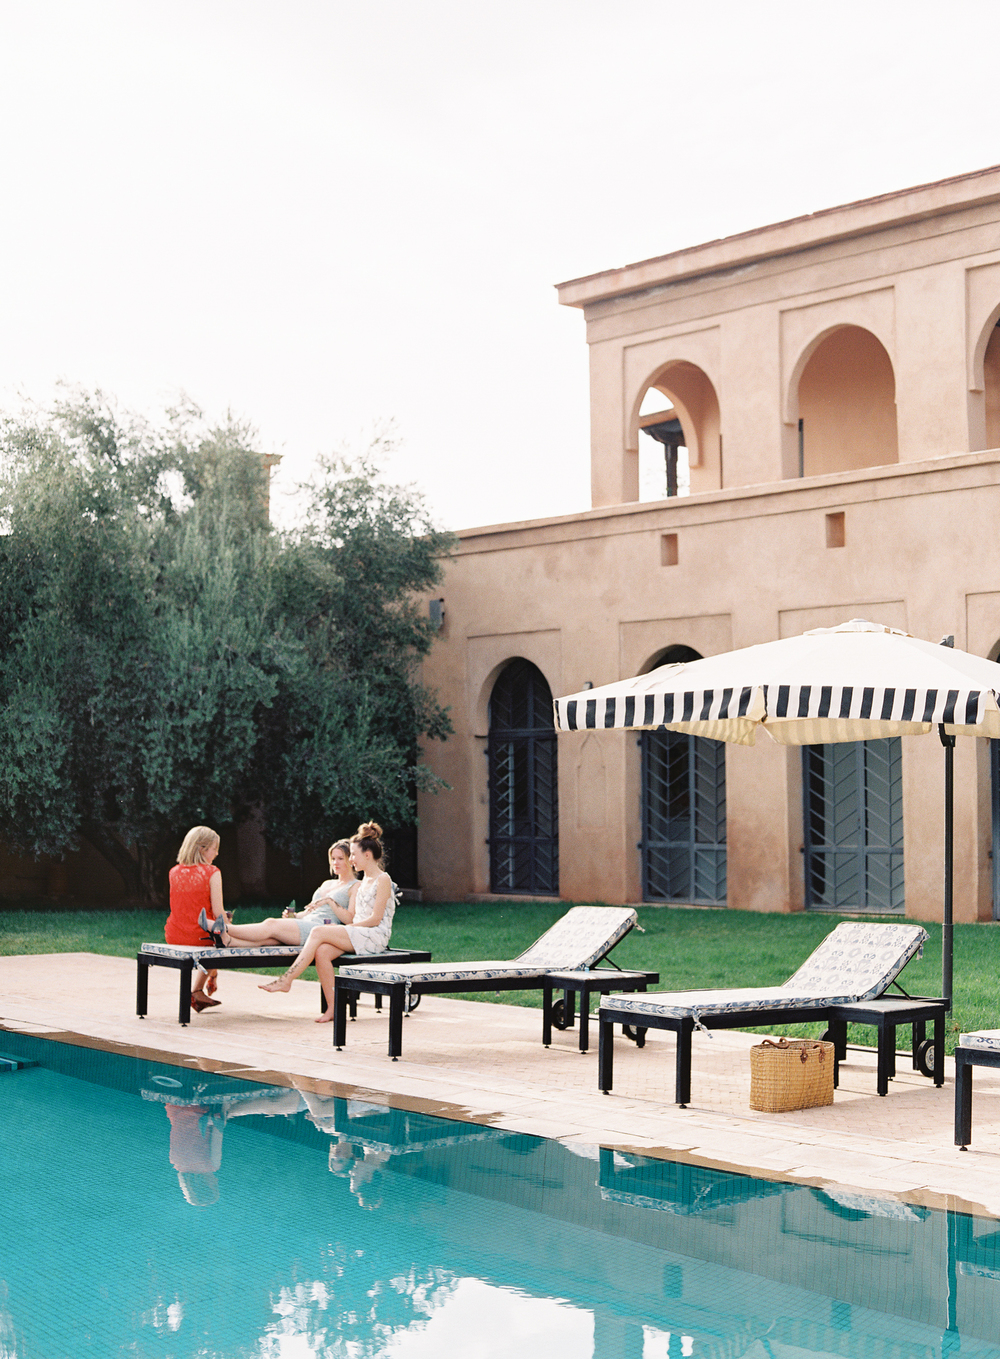 Peacock Pavilions boutique hotel in Marrakech, Morocco – Design by M. Montague - Pool